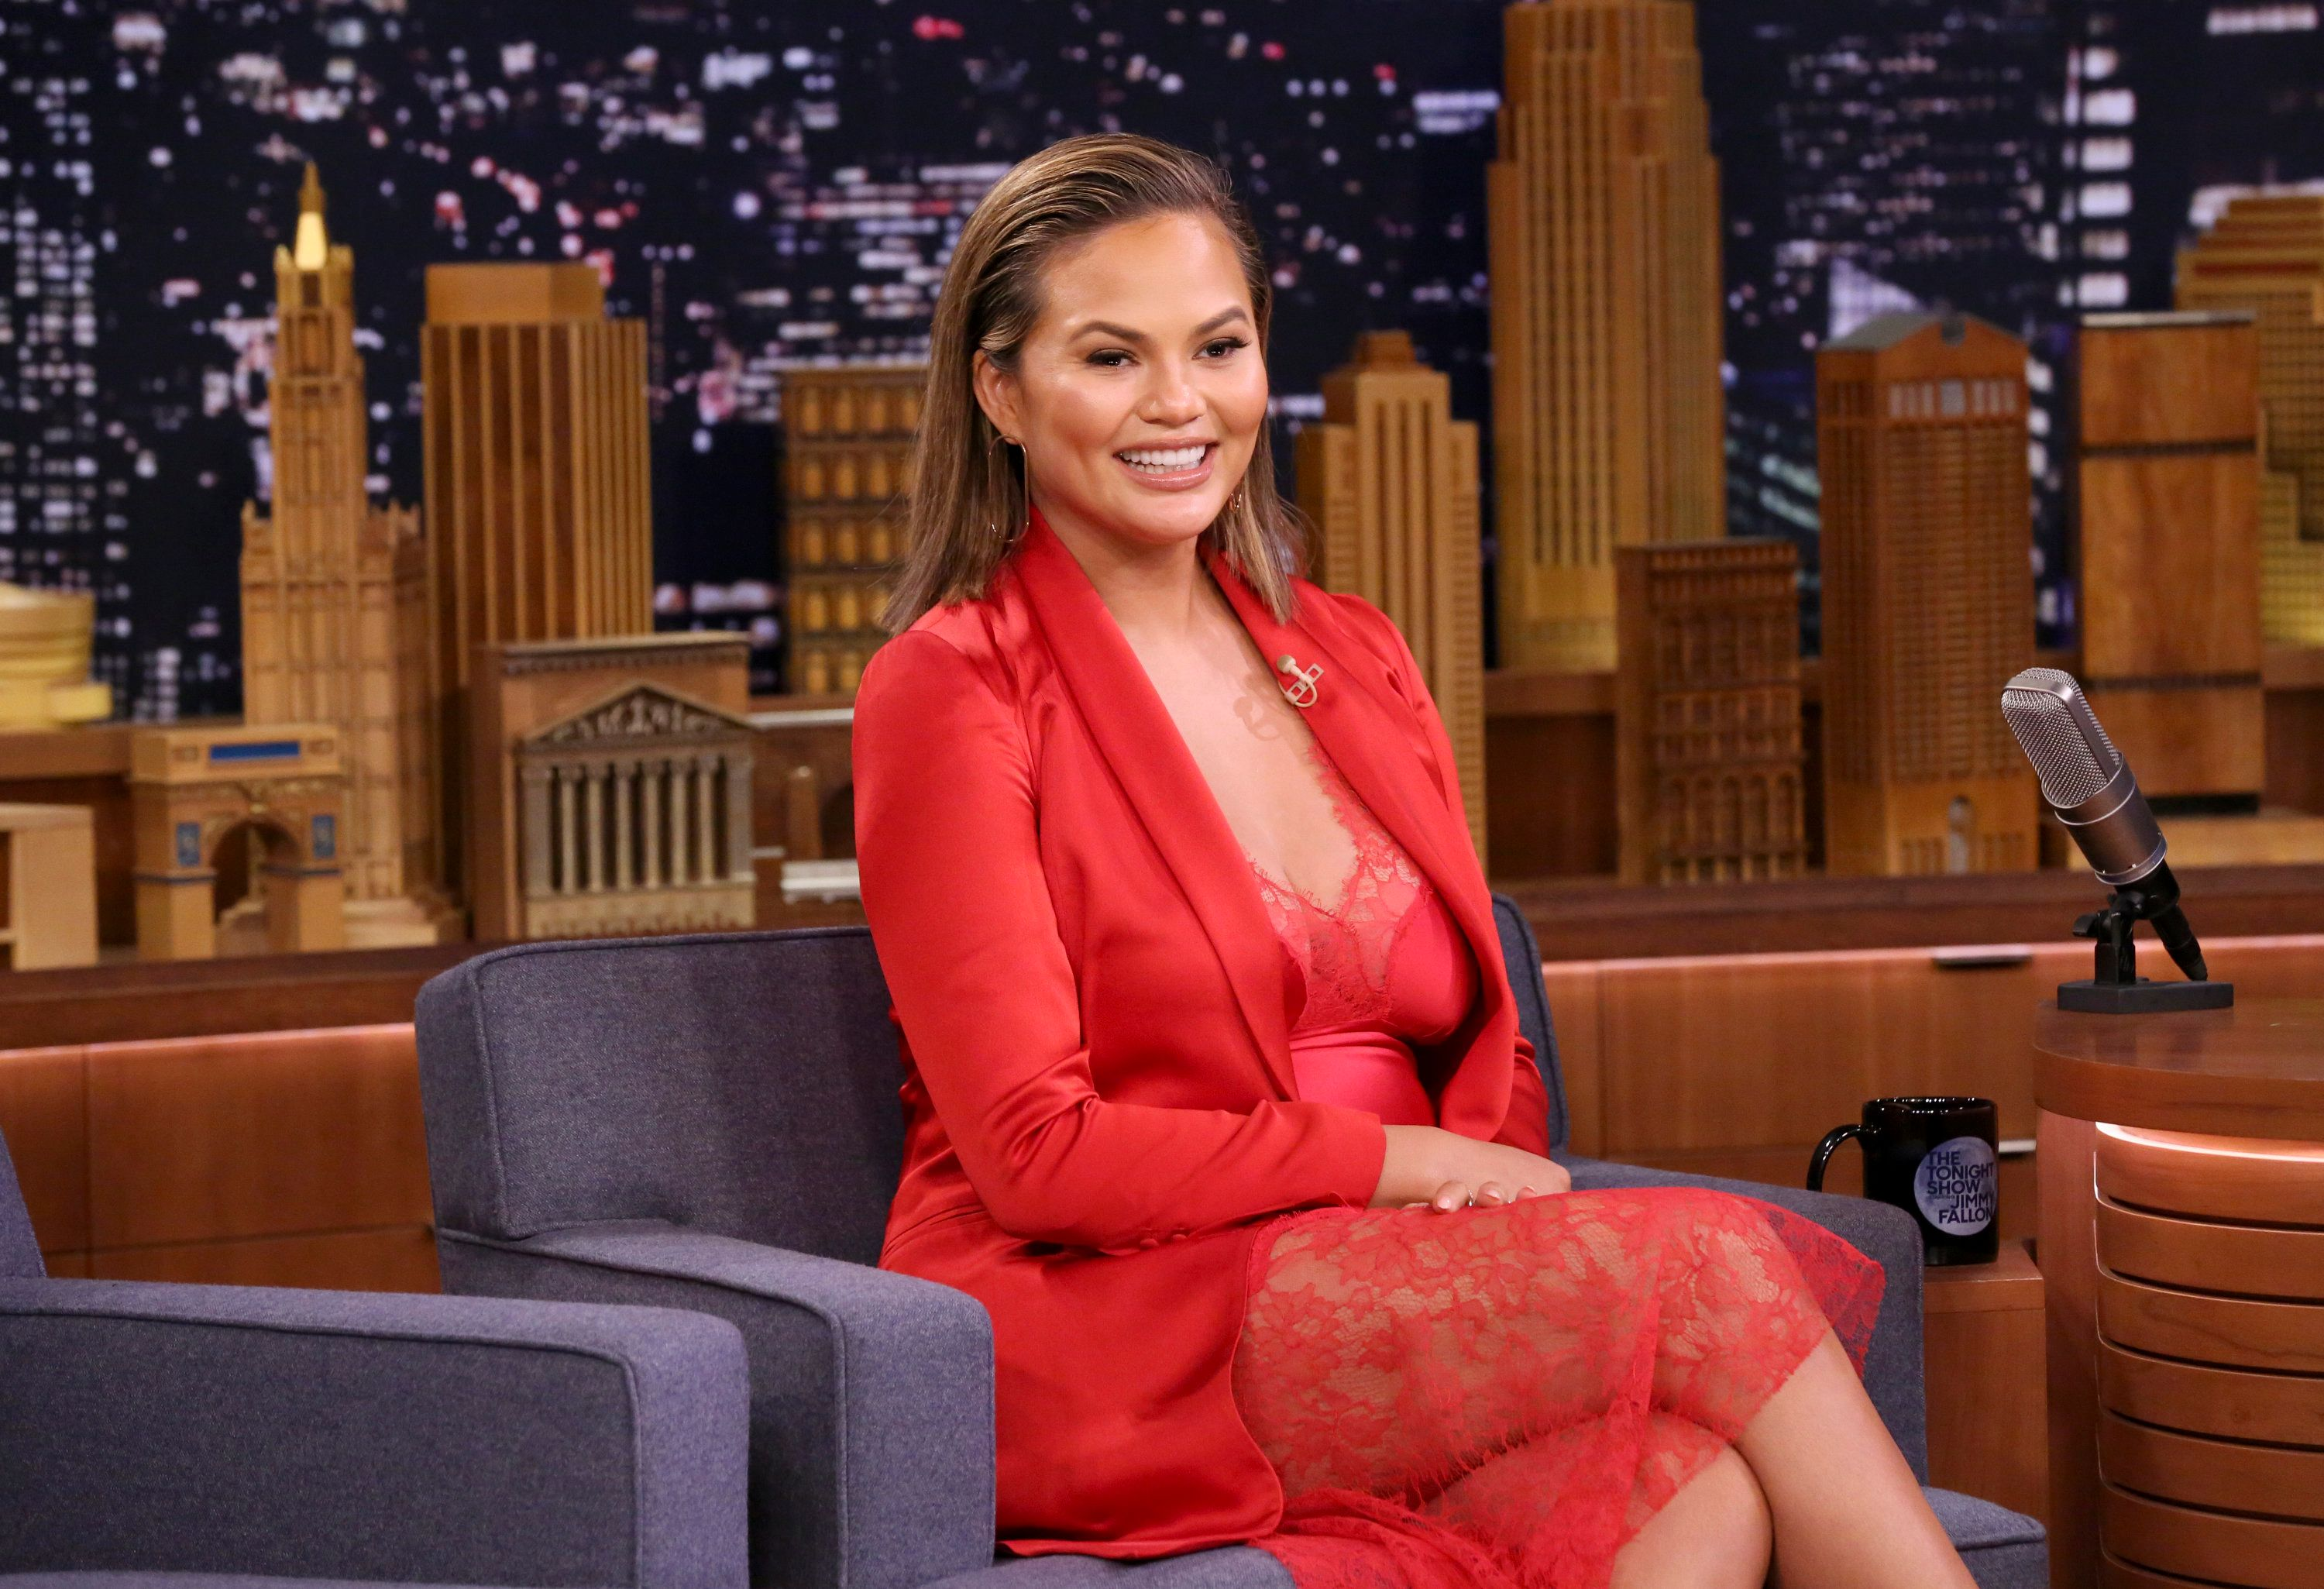 THE TONIGHT SHOW STARRING JIMMY FALLON -- Episode 0813 -- Pictured: Model/Actress Chrissy Teigen during an interview on January 30, 2018 -- (Photo by: Andrew Lipovsky/NBCU Photo Bank via Getty Images)